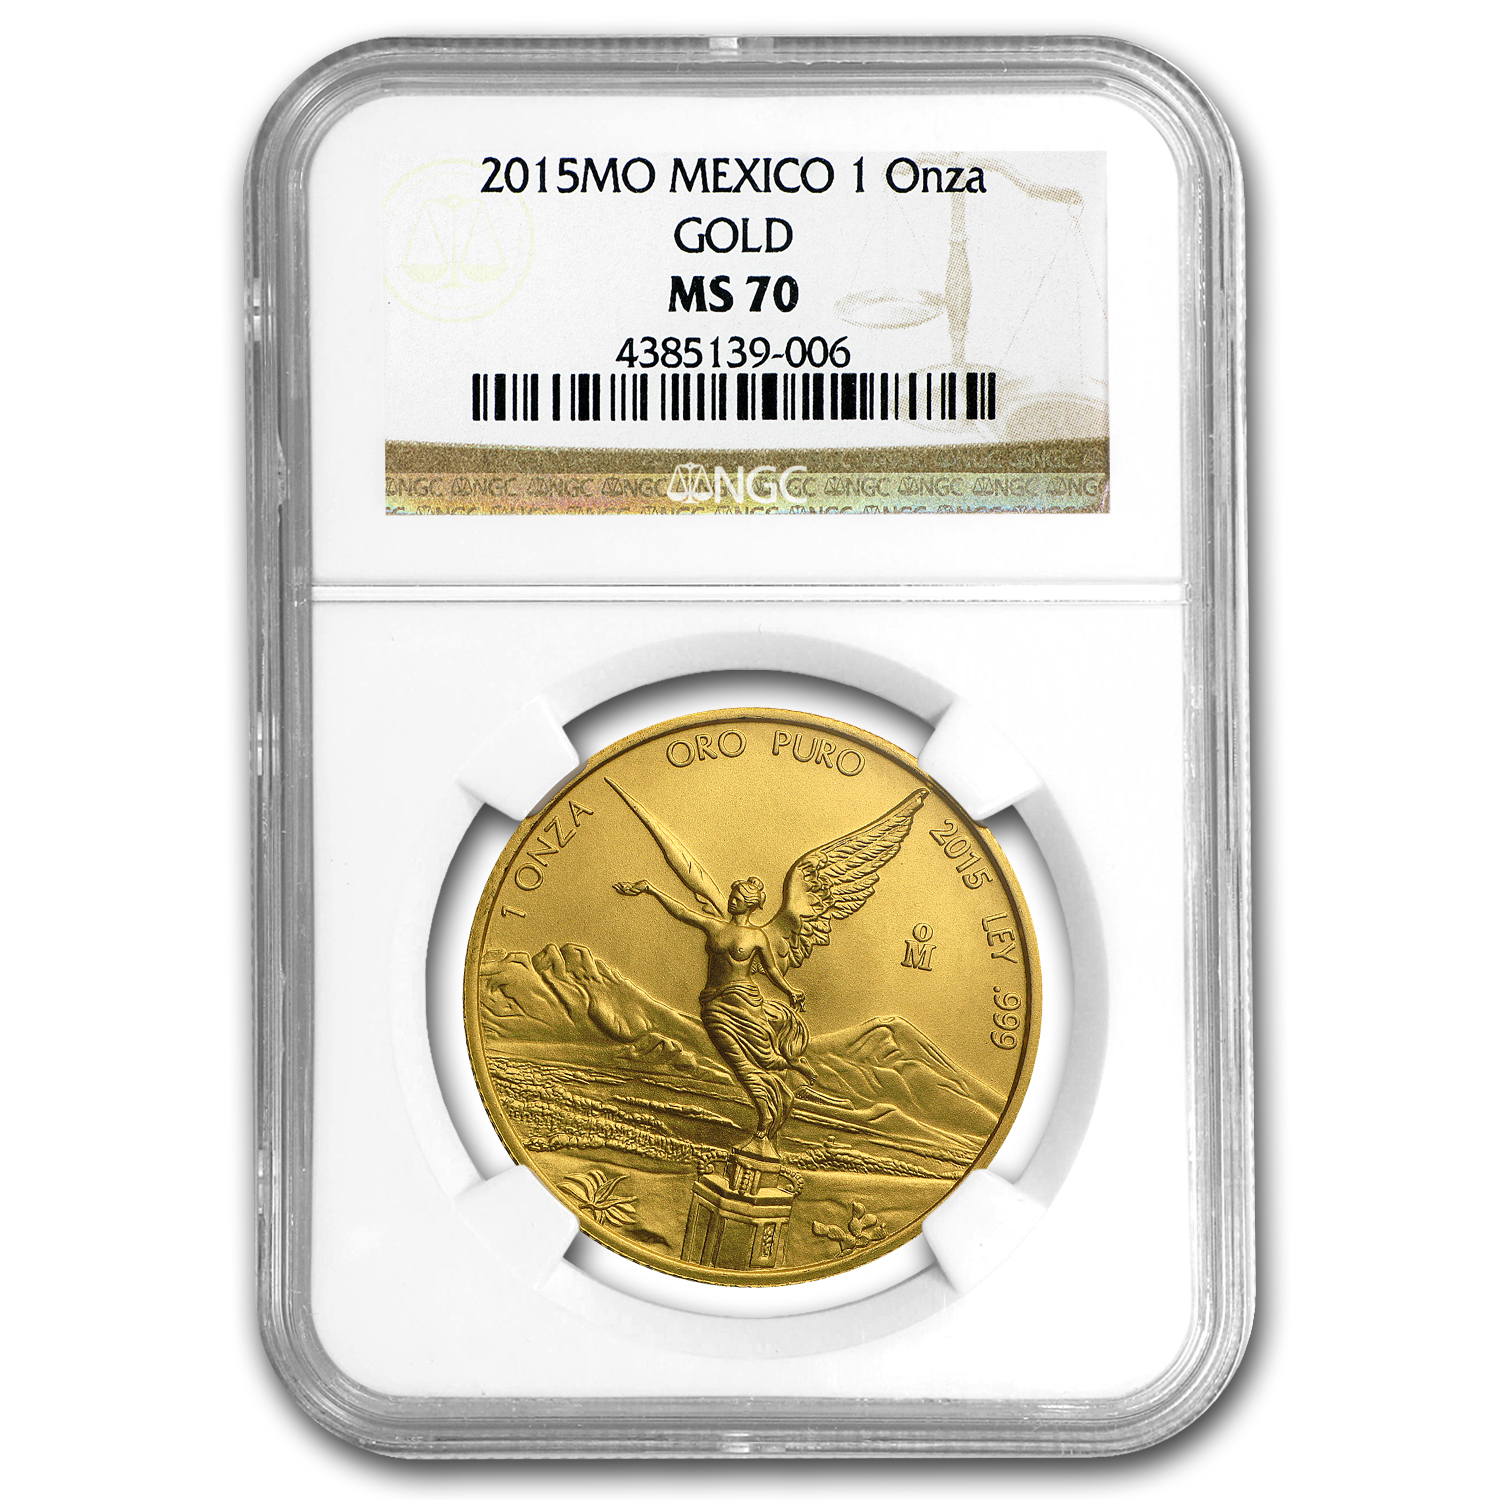 2015 Mexico 1 oz Gold Libertad MS-70 NGC